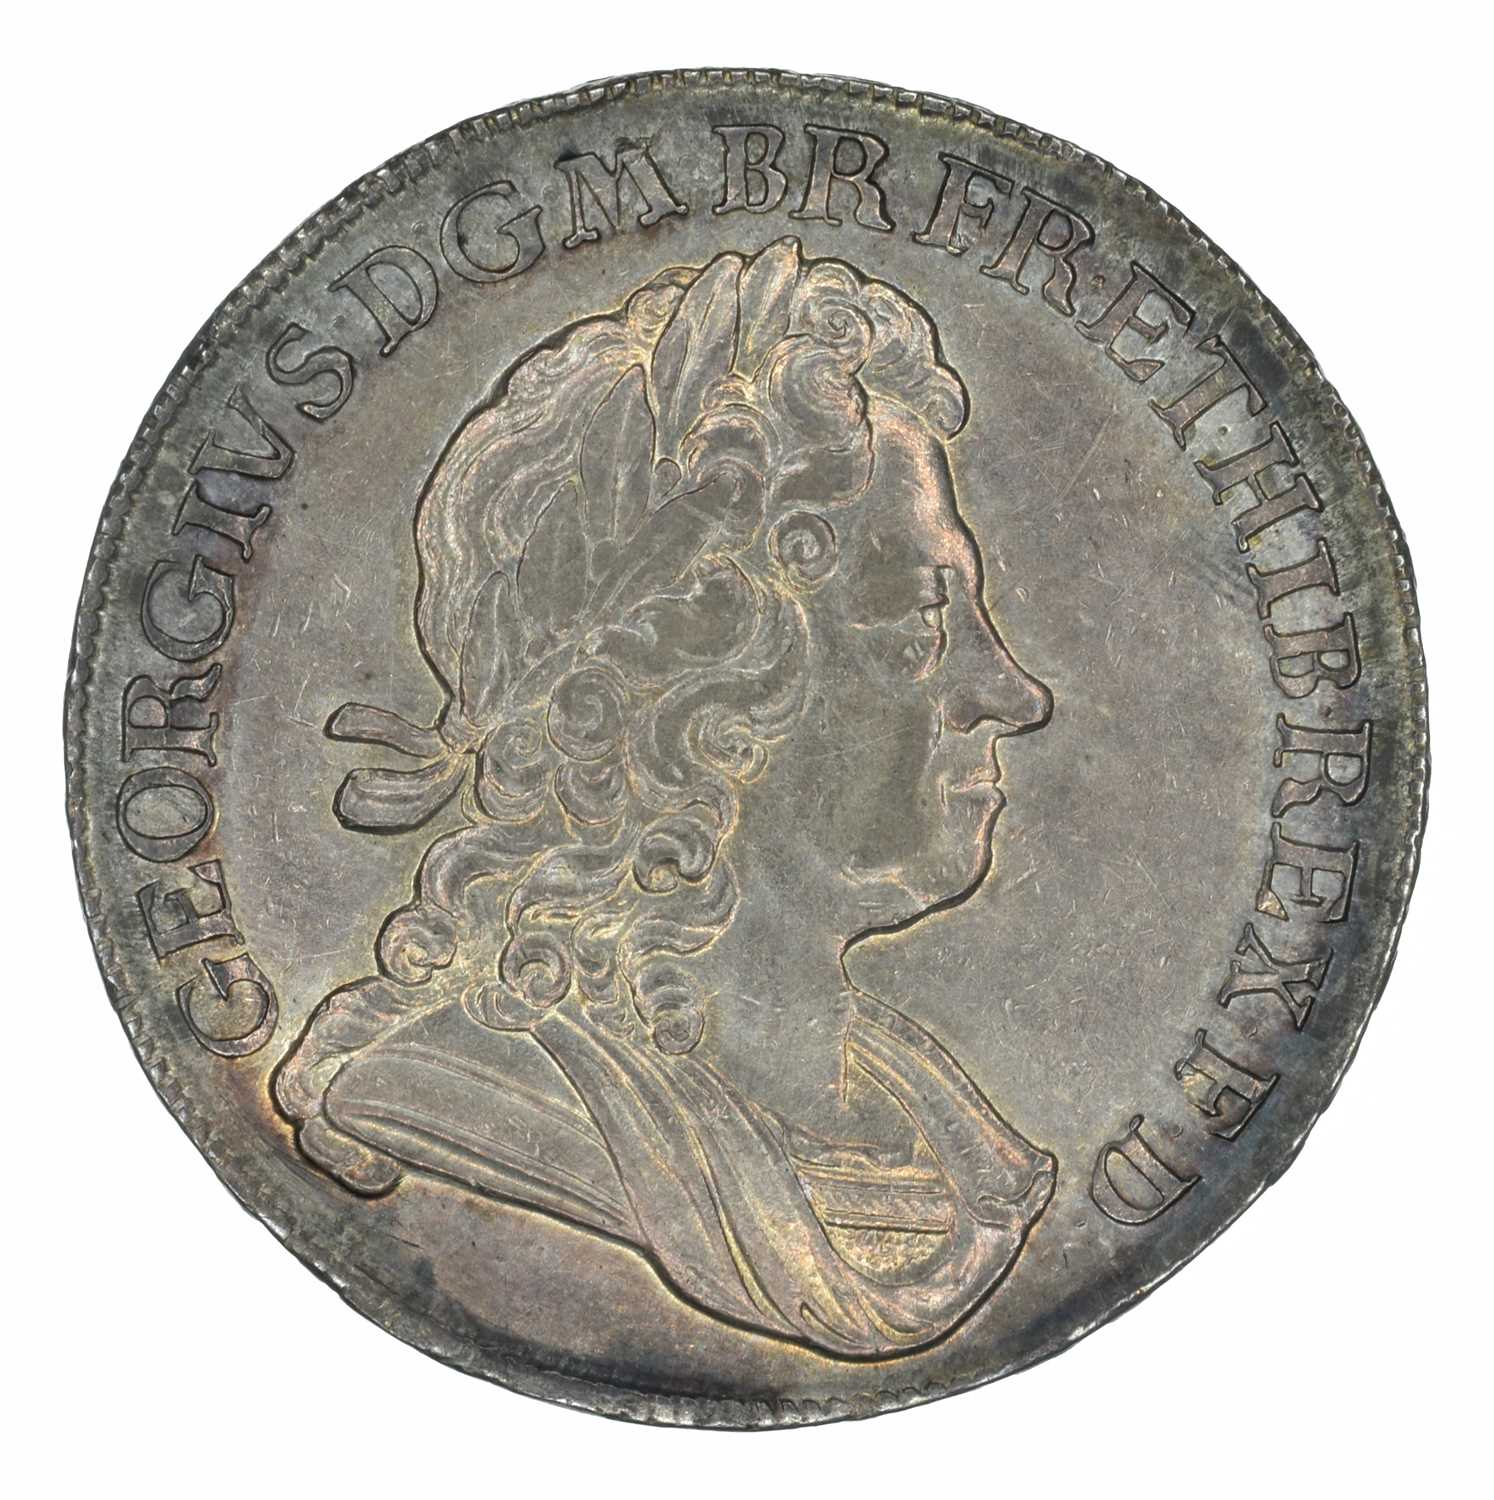 Lot 33 - King George I, Crown, 1716 SECVNDO.